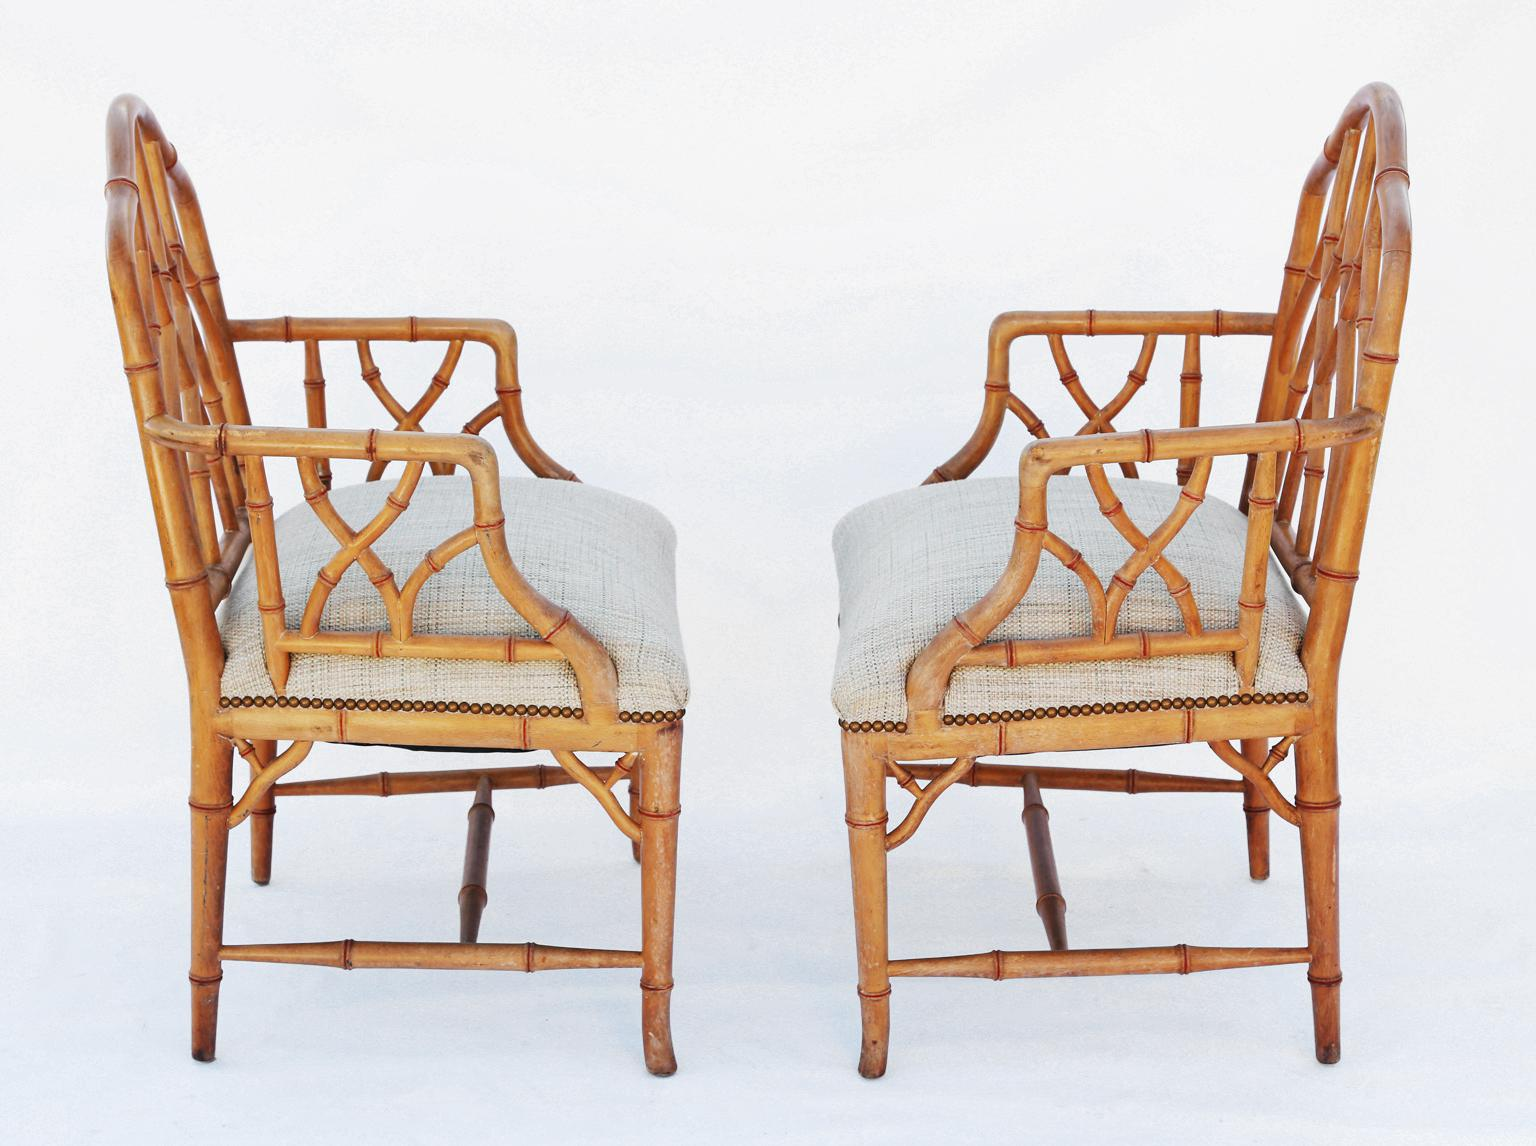 Pair Of Armchairs, Of Pine, Carved As Bamboo, In The Chippendale Style,